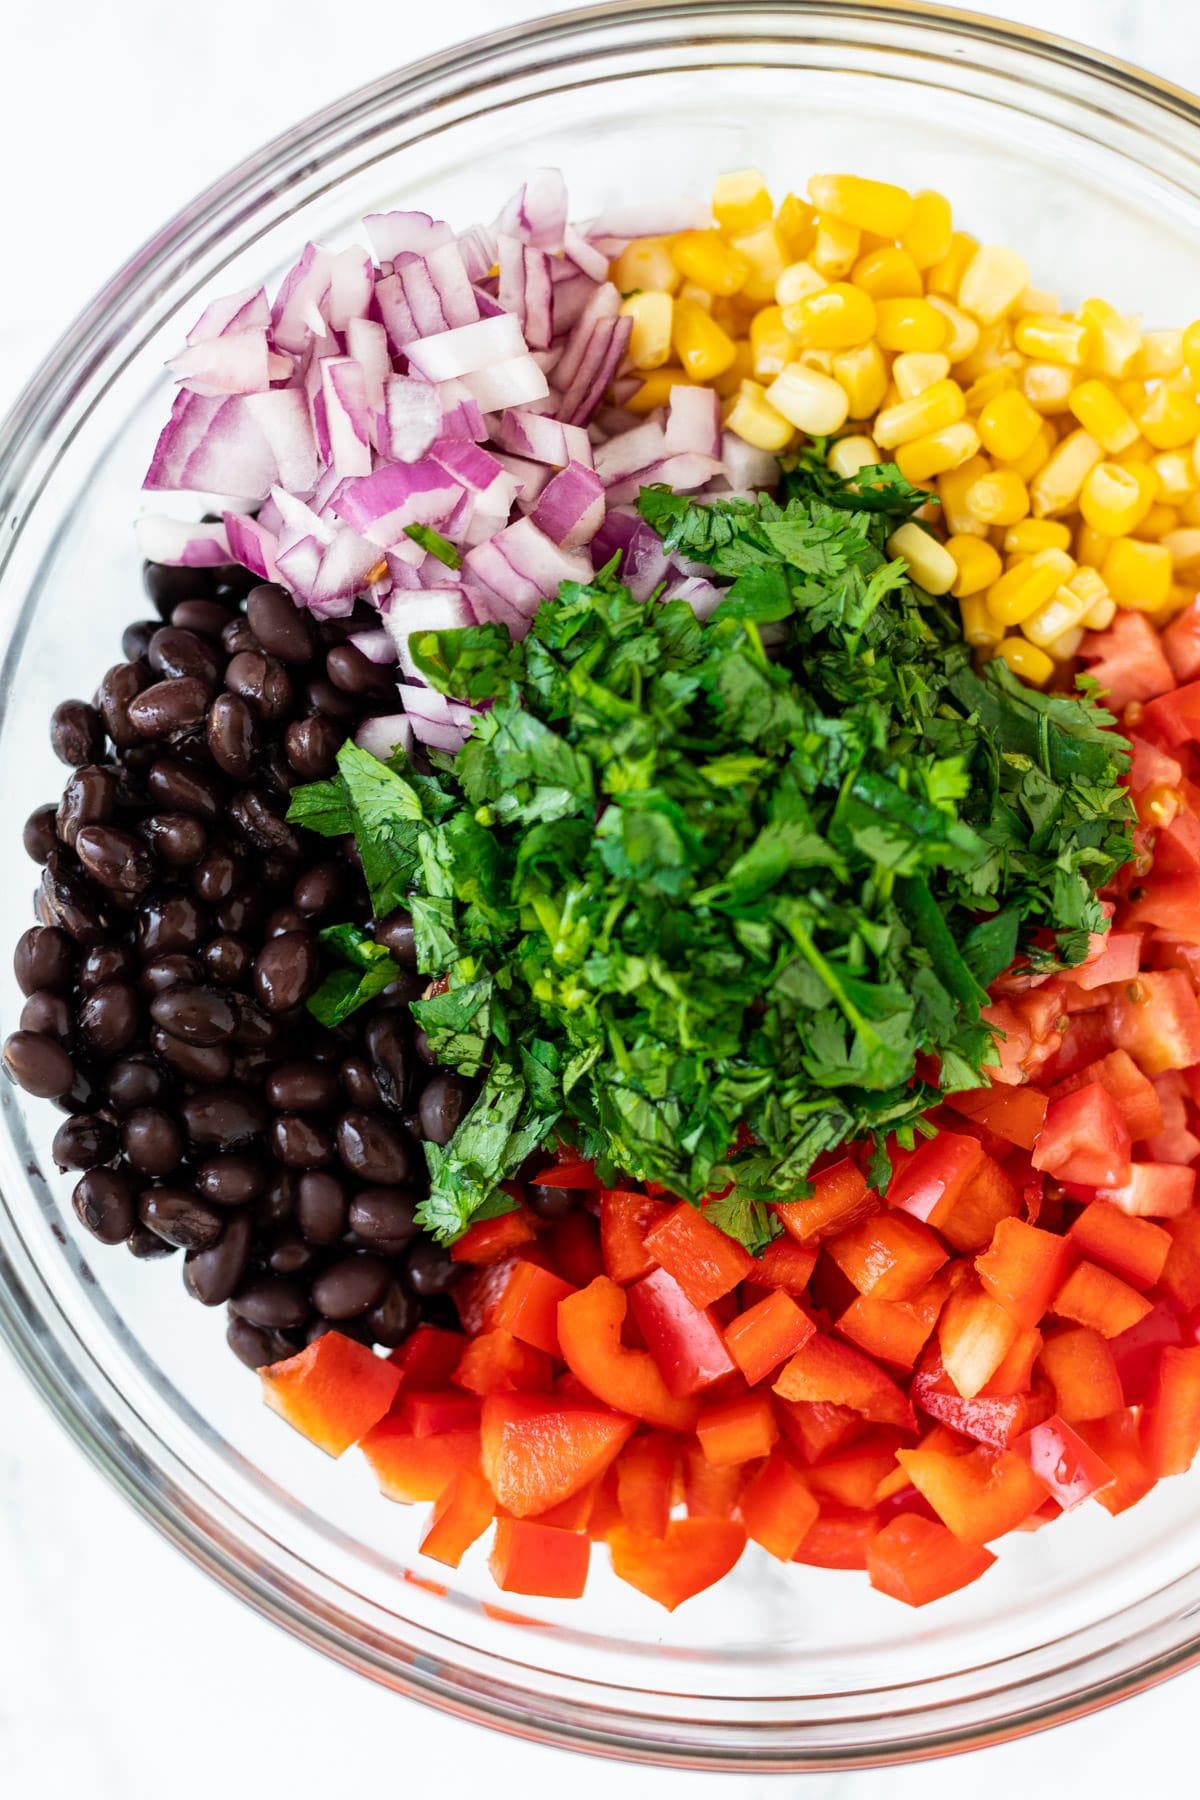 ingredients for black bean and corn salad in a bowl,